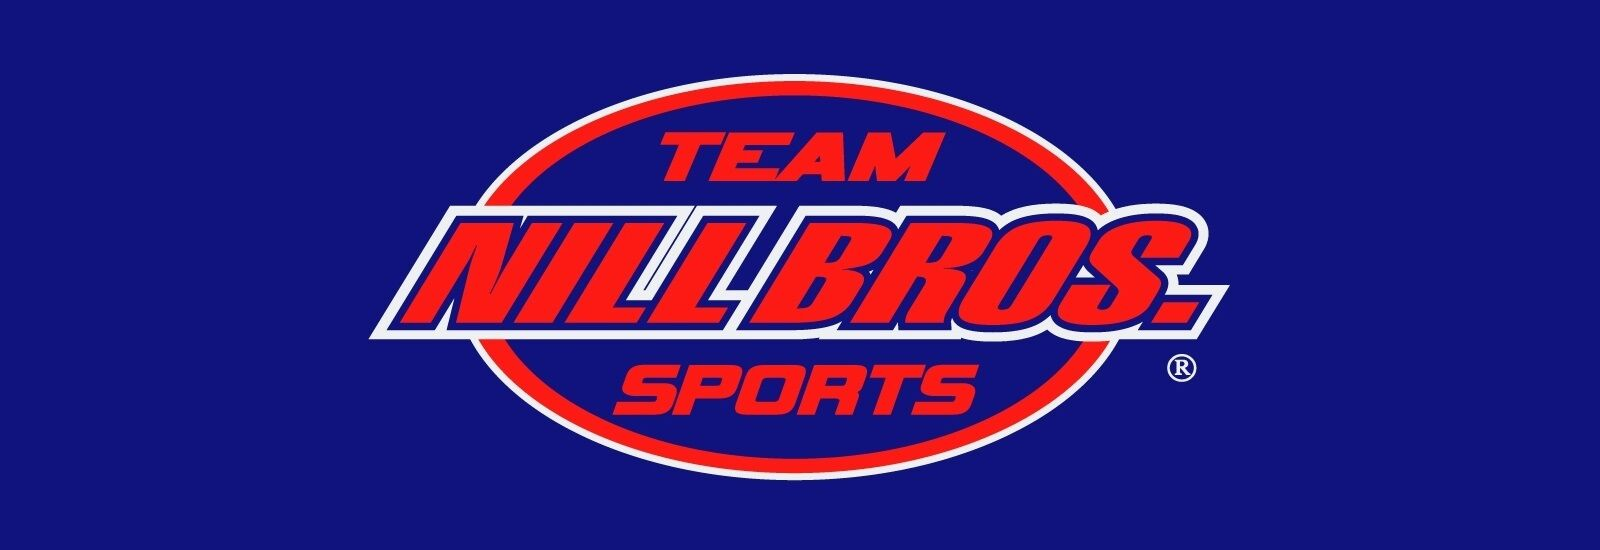 Nill Bros Sporting Goods